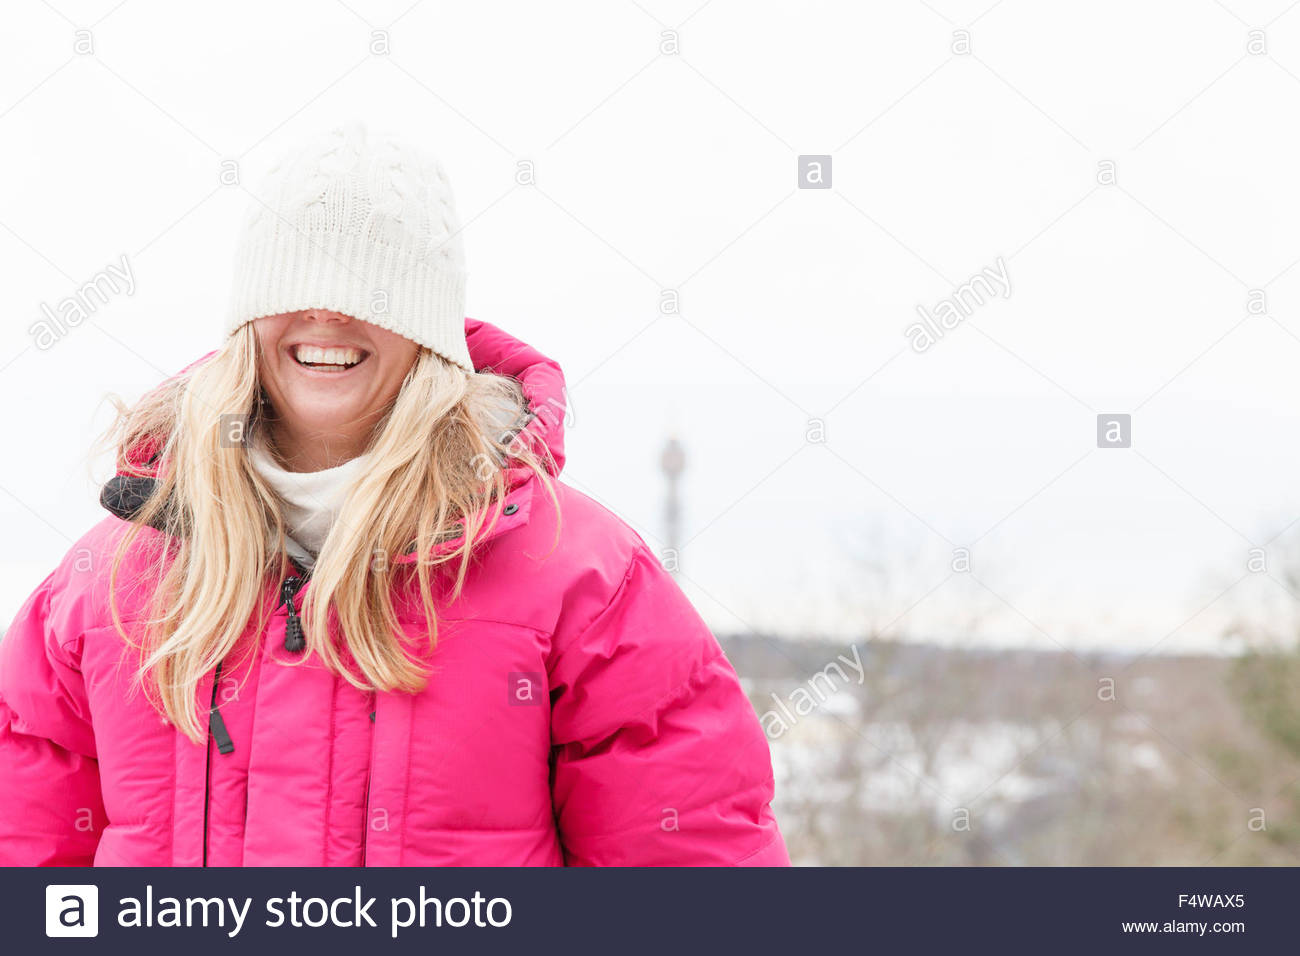 Sweden, Stockholm, Ostermalm, Young woman fooling around with knit hat - Stock Image